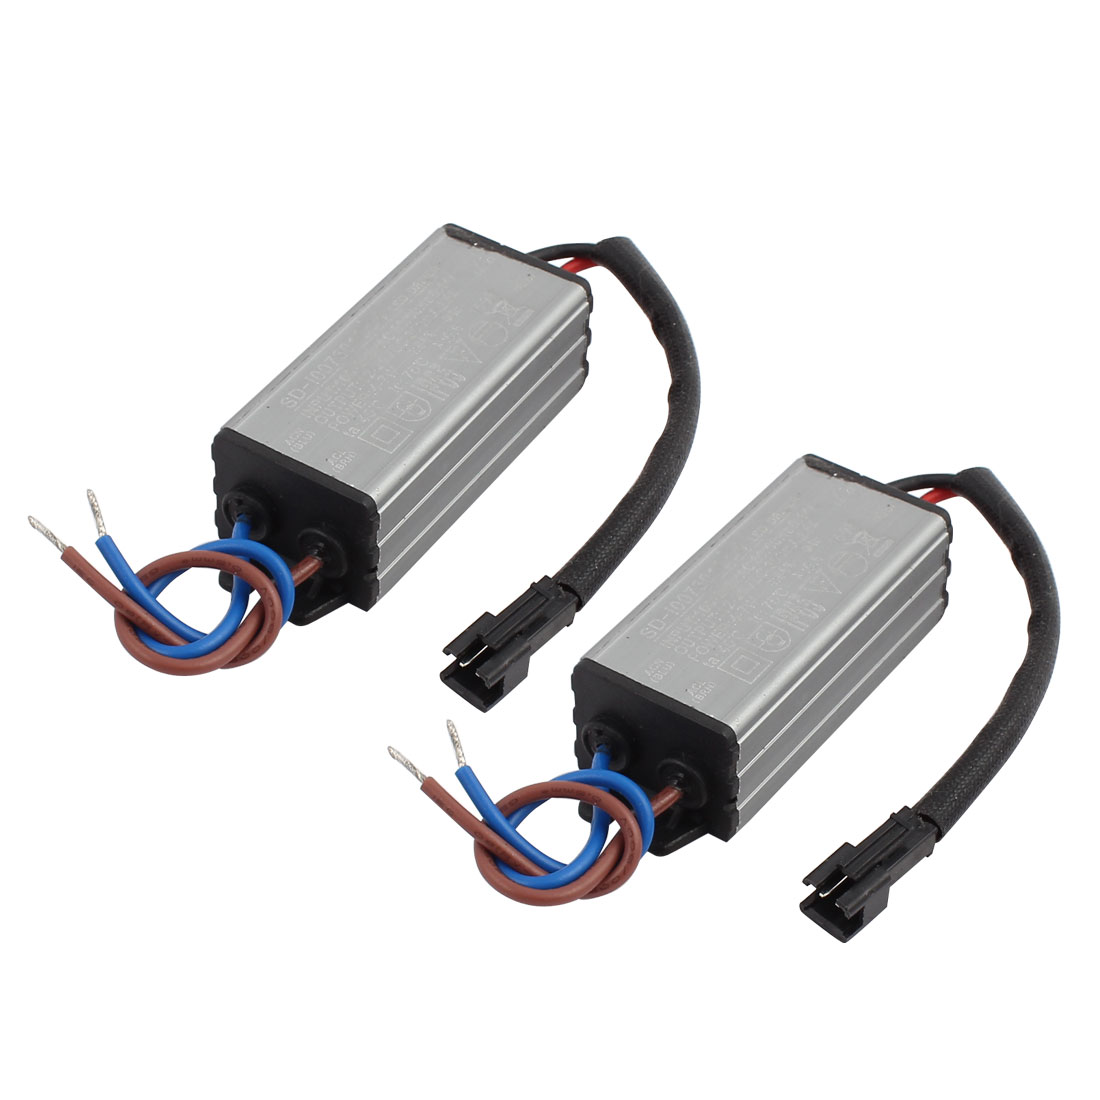 2Pcs AC100-265V to DC12-26V 4-7W Transformer IP65 Waterproof LED Driver Power Supply